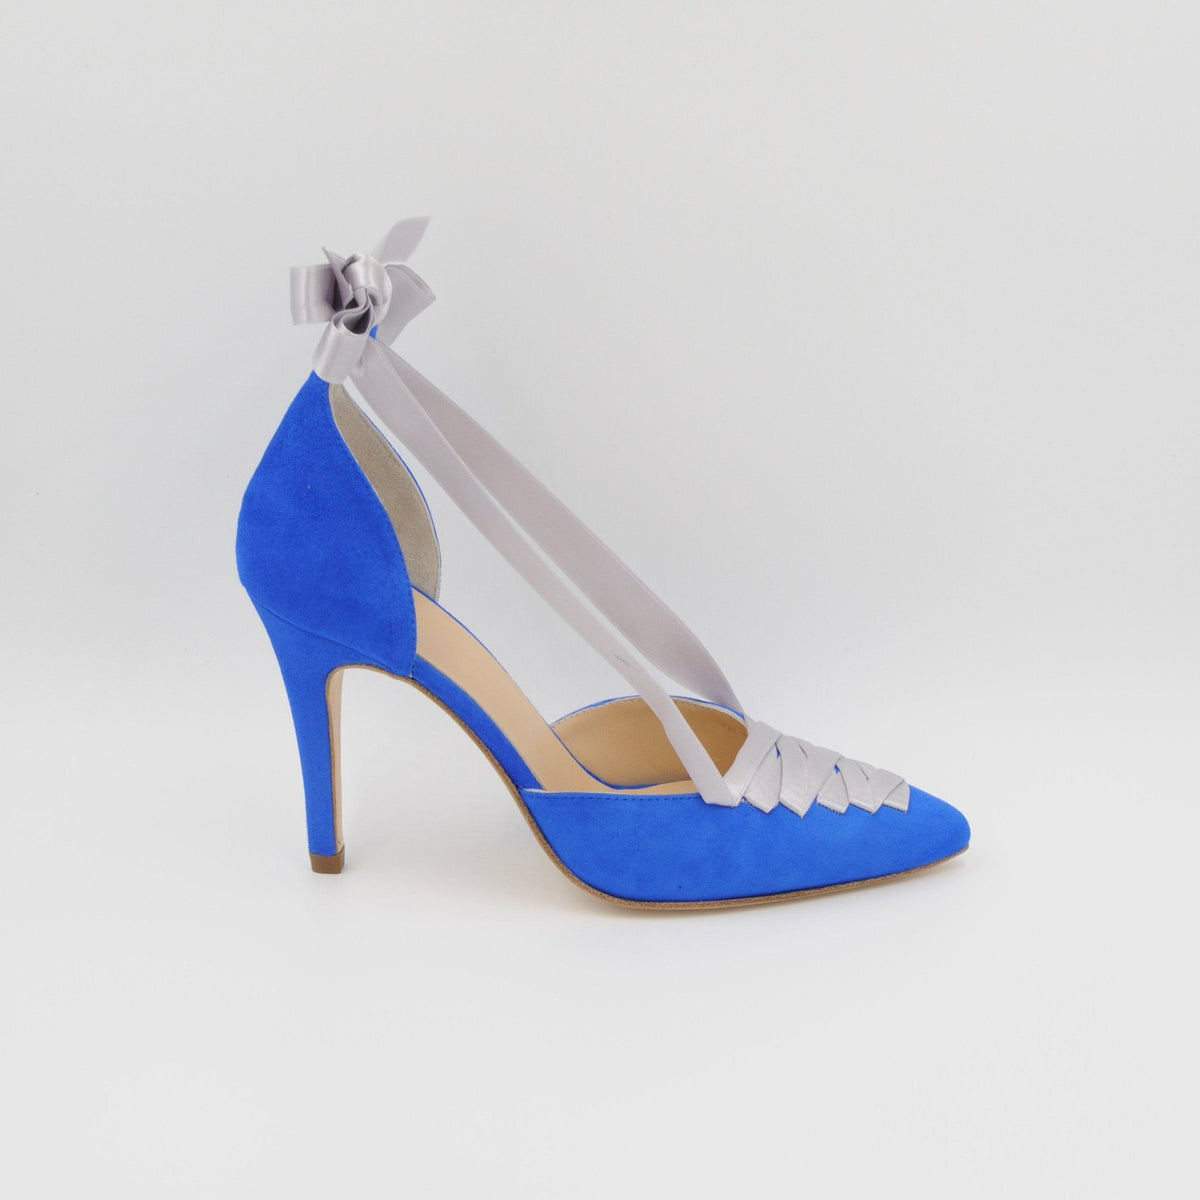 Lola Domecq Sophie In Blue Hand made suede lace up heel